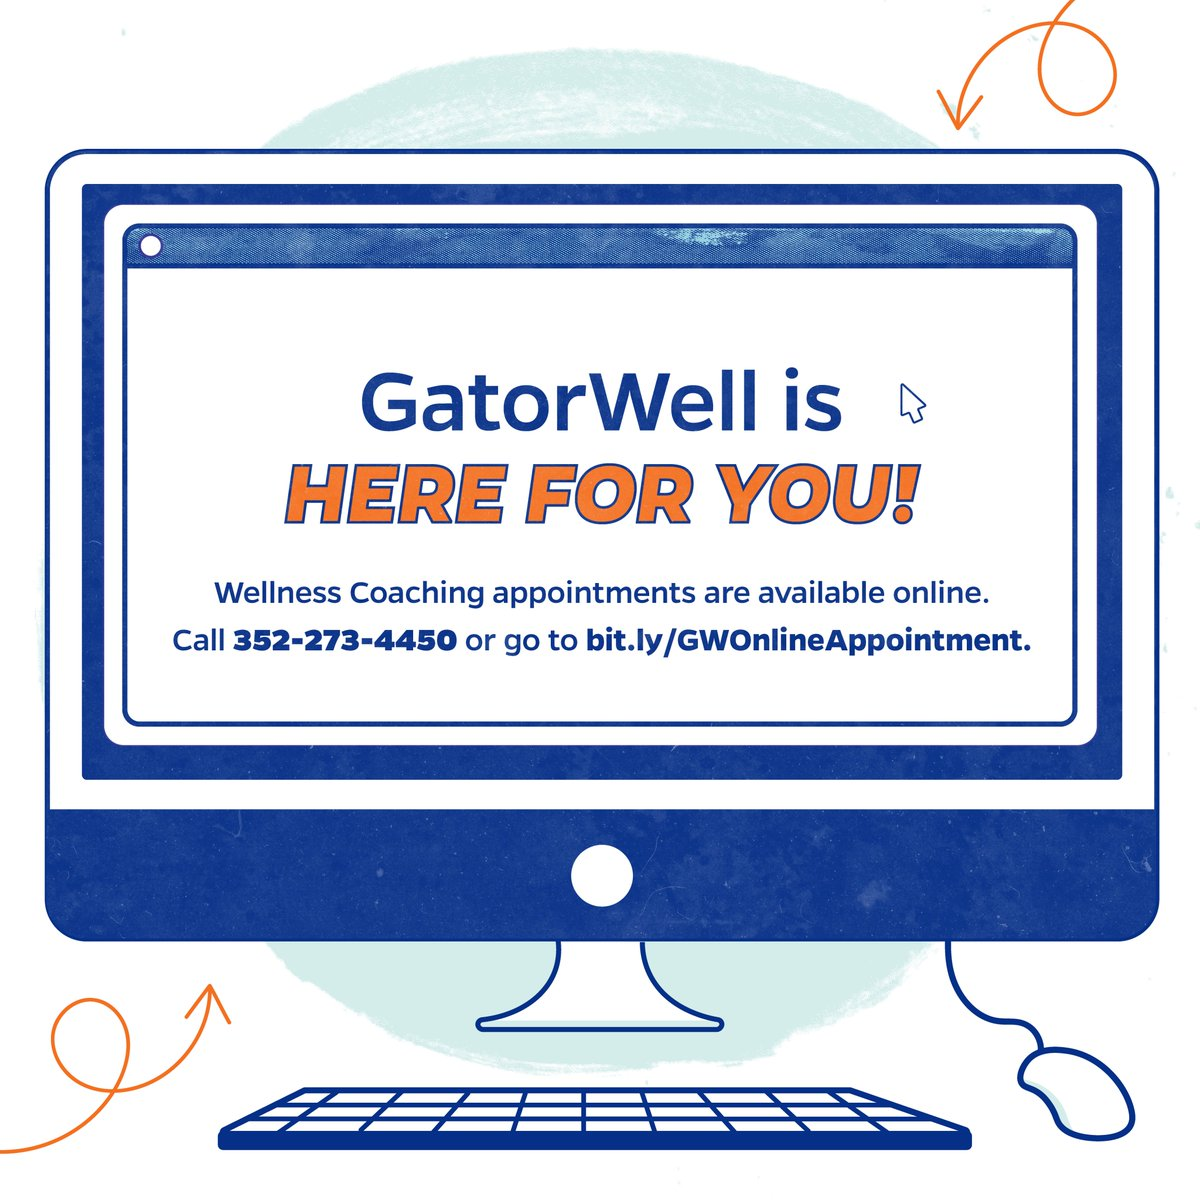 Continue practicing academic success by signing up for a free Wellness Coaching appointment!😃